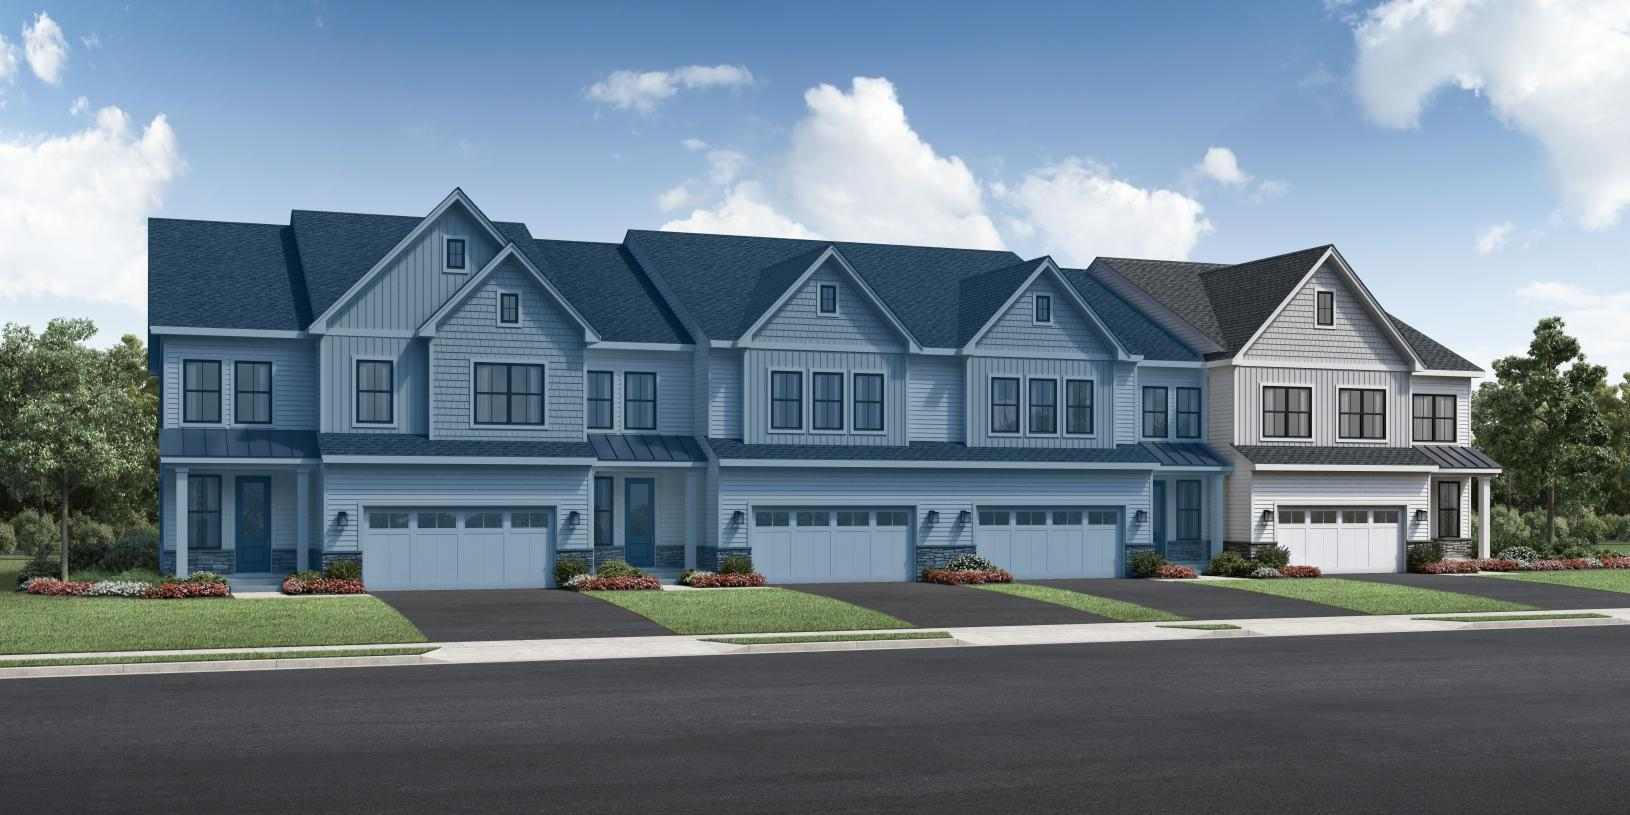 Elevation Image:Fairview